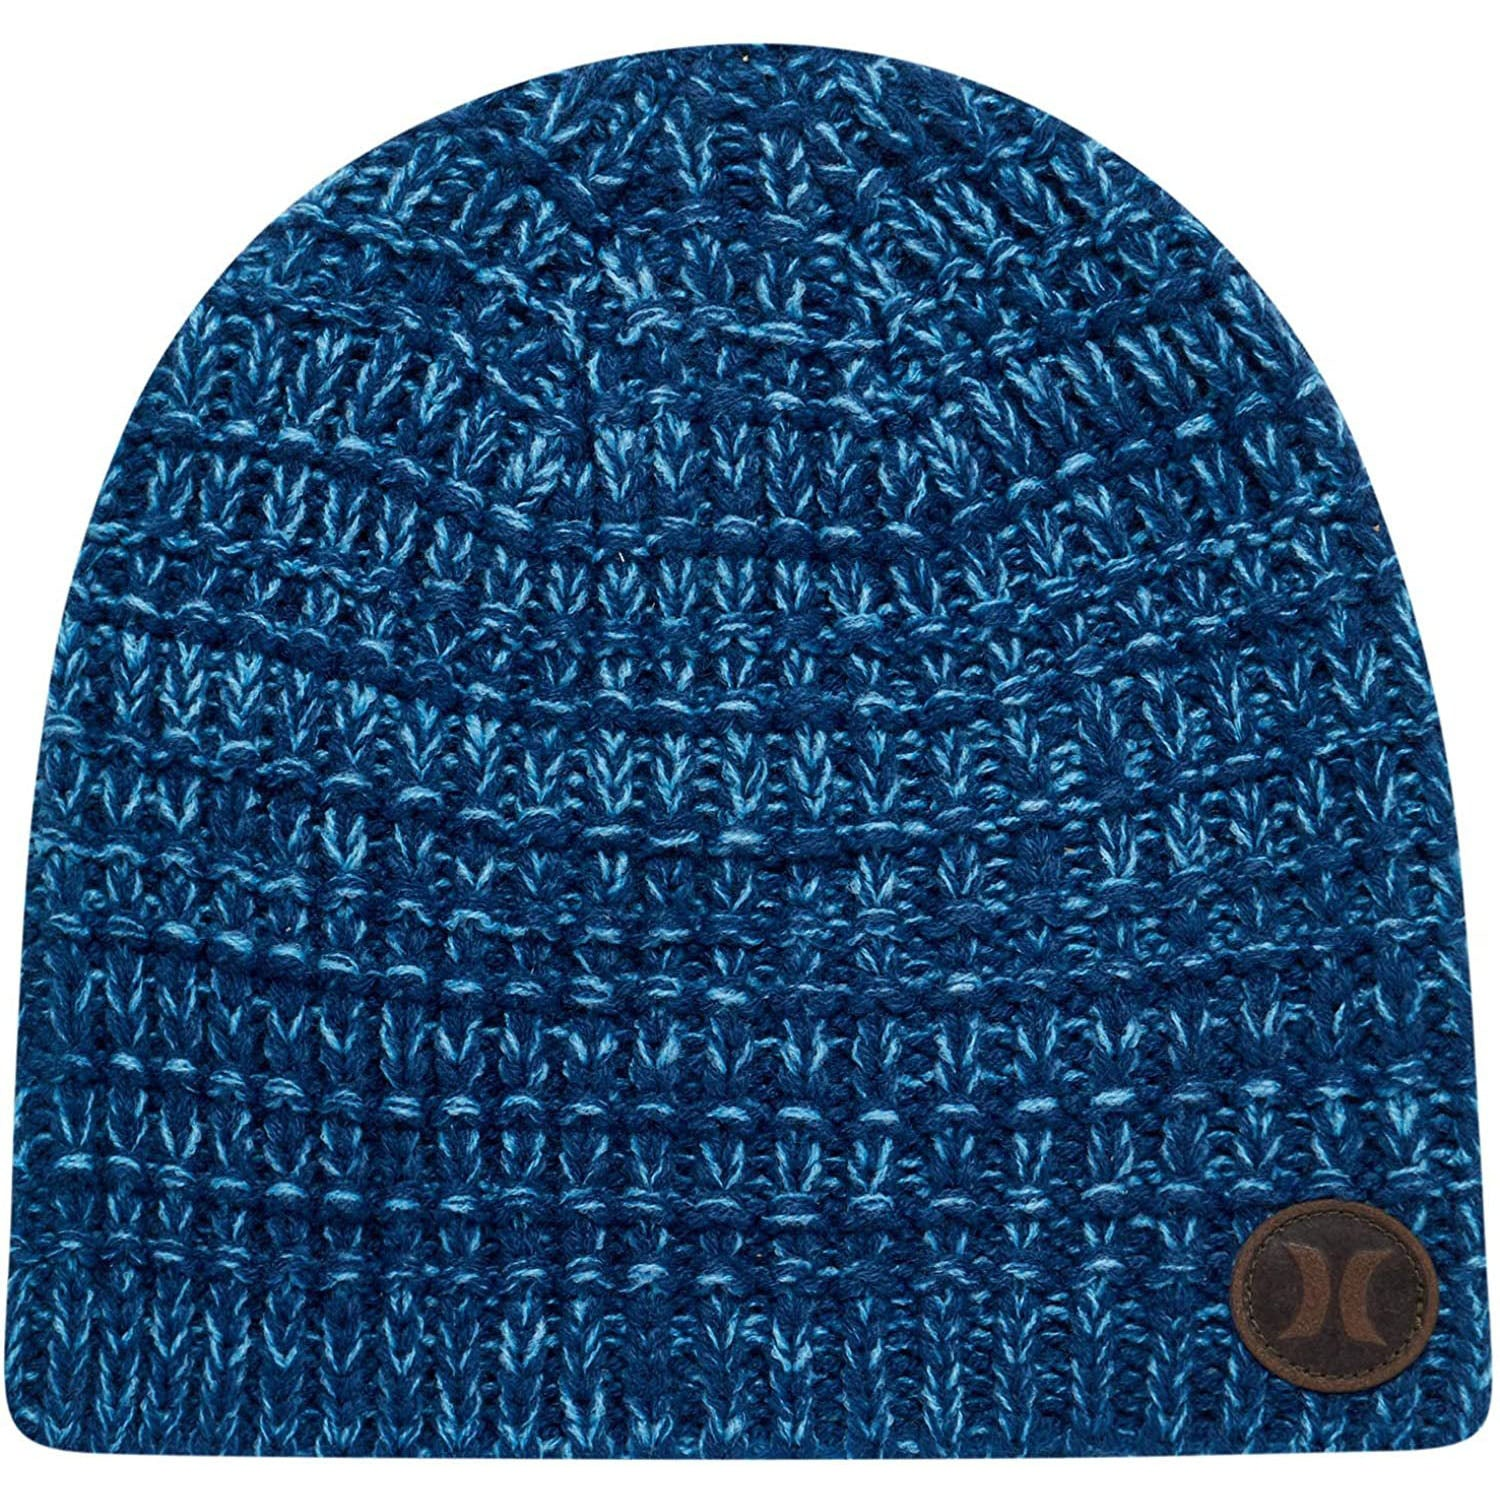 Hurley Men's Winter Hat - Loose Knit Marled Beanie